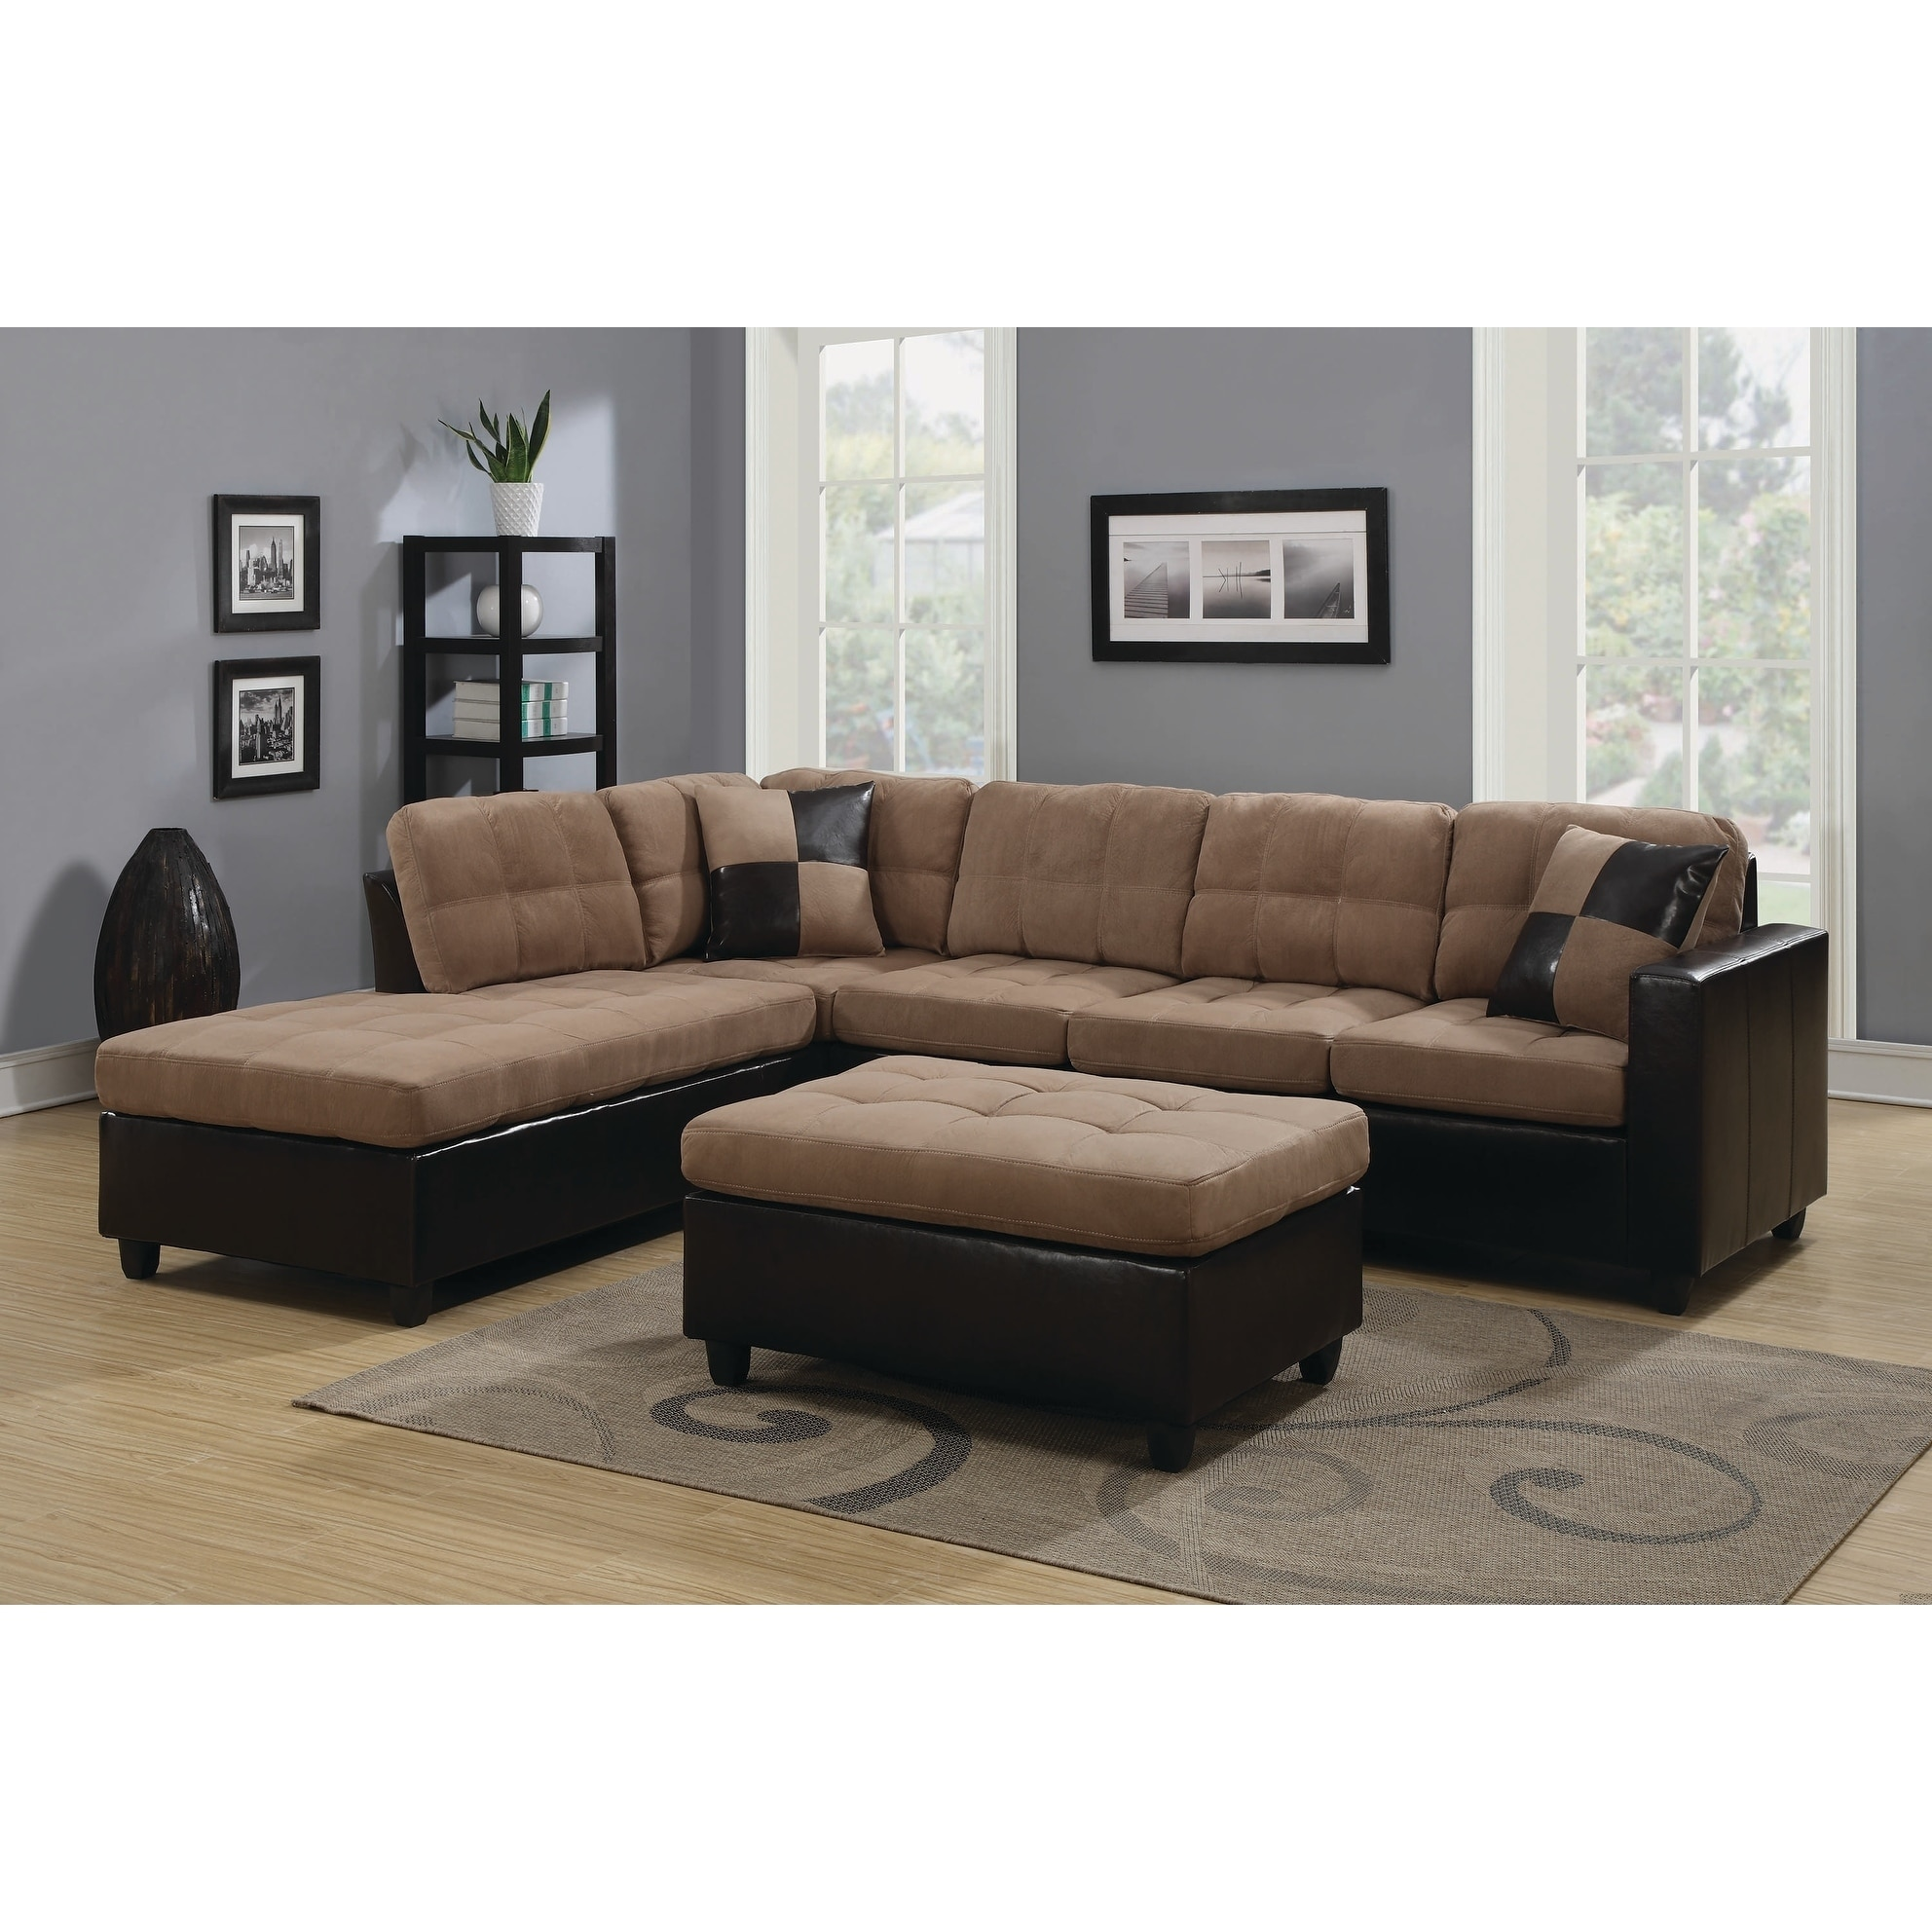 Coaster Furniture Tan/Brown Velvet Vinyl Tufted Sectional...